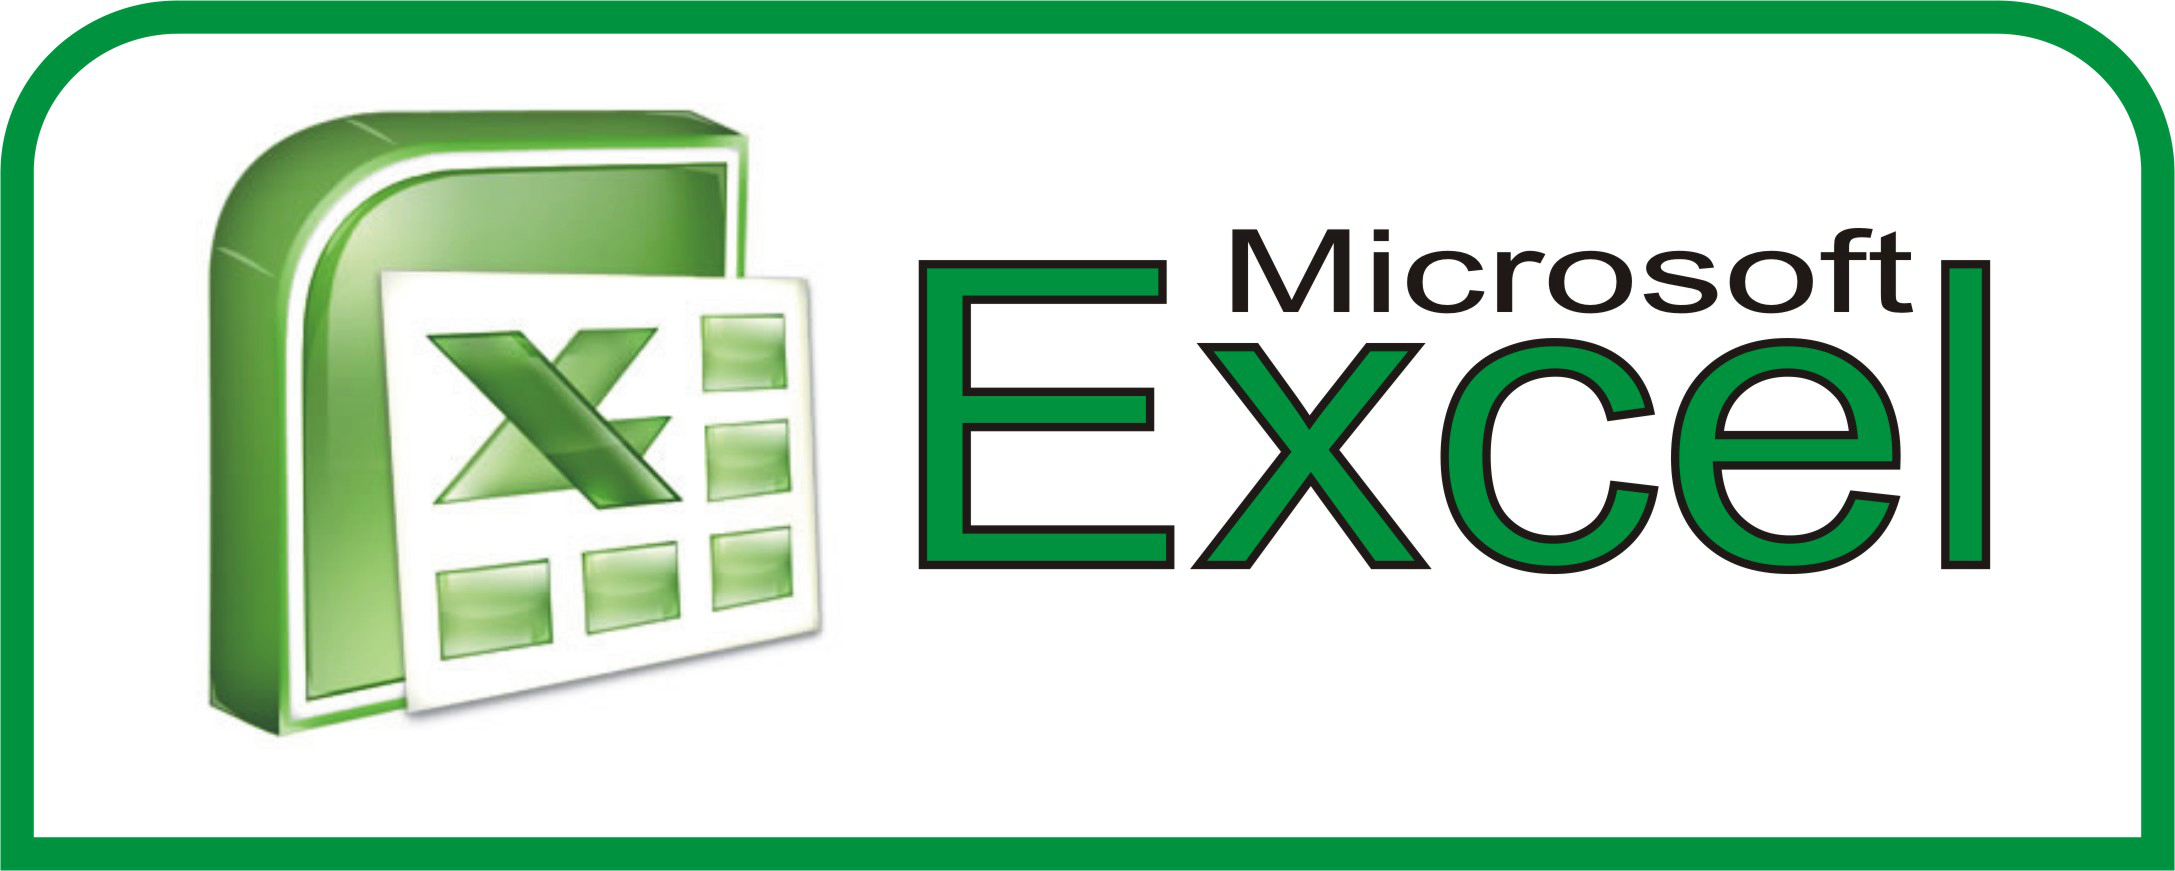 Ediblewildsus  Gorgeous  Excel Shortcuts You Probably Didnt Know About  Techdissected With Handsome Subtotal Command Excel Besides Cagr Calculation In Excel Furthermore Npv On Excel With Awesome Compare In Excel Also How To Replace A Word In Excel In Addition Calculations In Excel And  Hyundai Excel As Well As Excel How To Delete Blank Rows Additionally One Variable Data Table Excel  From Techdissectedcom With Ediblewildsus  Handsome  Excel Shortcuts You Probably Didnt Know About  Techdissected With Awesome Subtotal Command Excel Besides Cagr Calculation In Excel Furthermore Npv On Excel And Gorgeous Compare In Excel Also How To Replace A Word In Excel In Addition Calculations In Excel From Techdissectedcom